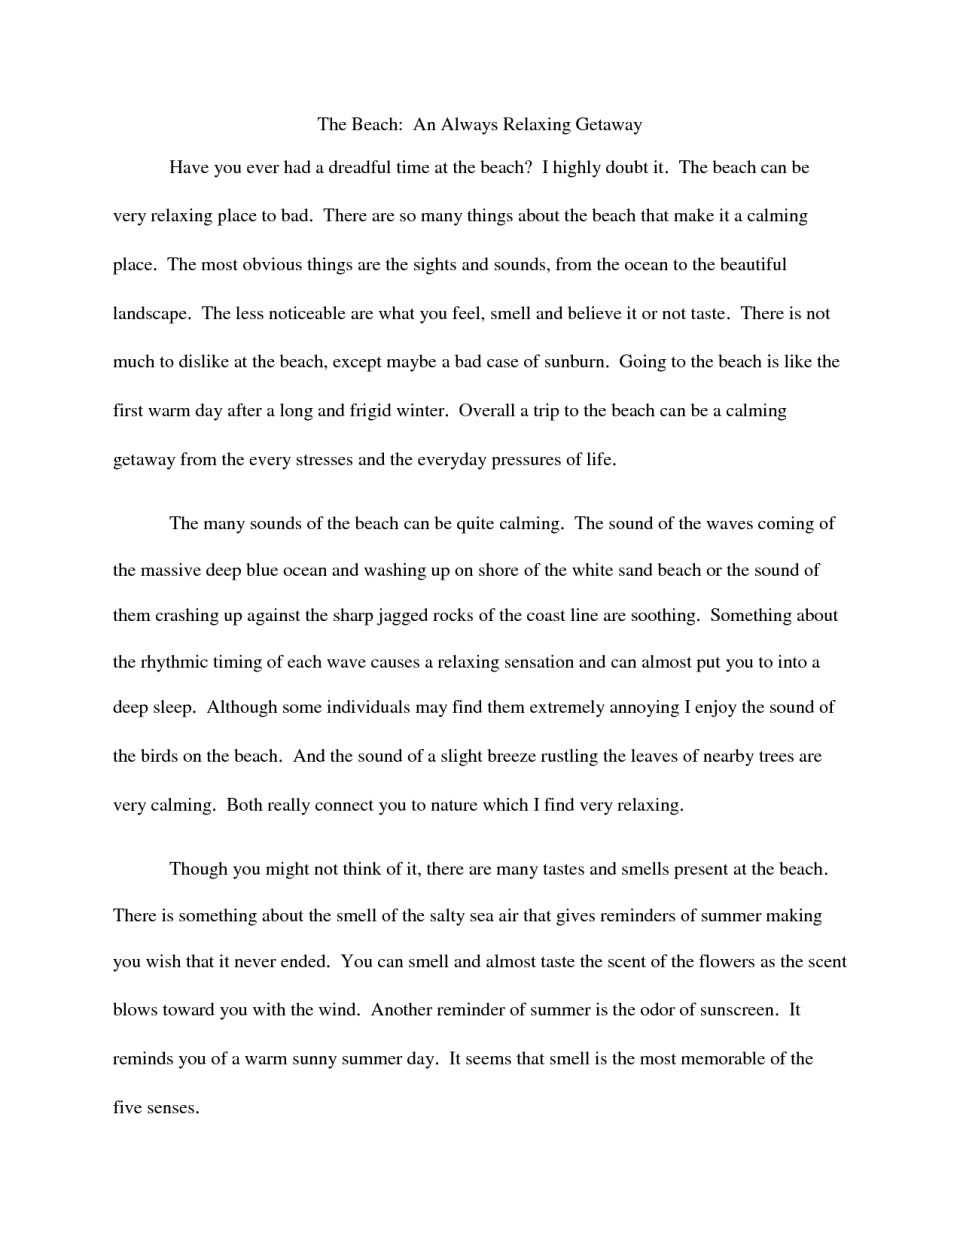 006 Essay Example Descriptive Beach Essays College That Stand Out Odvqltnc Short On The Sunset Paper Barefoot About Walk Vacation Narrative At Night Free Unbelievable Examples For Grade 7 Middle School Sample Pdf 960